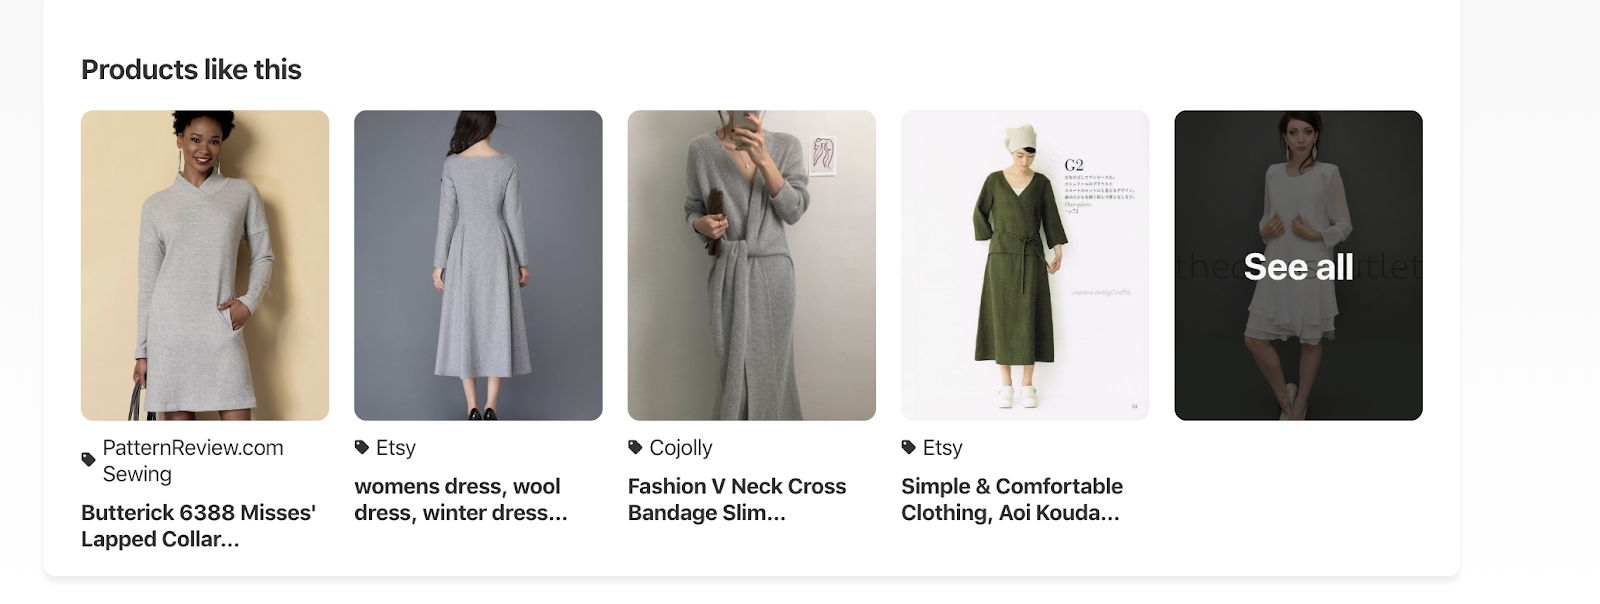 pinterest product pins shoppable feed